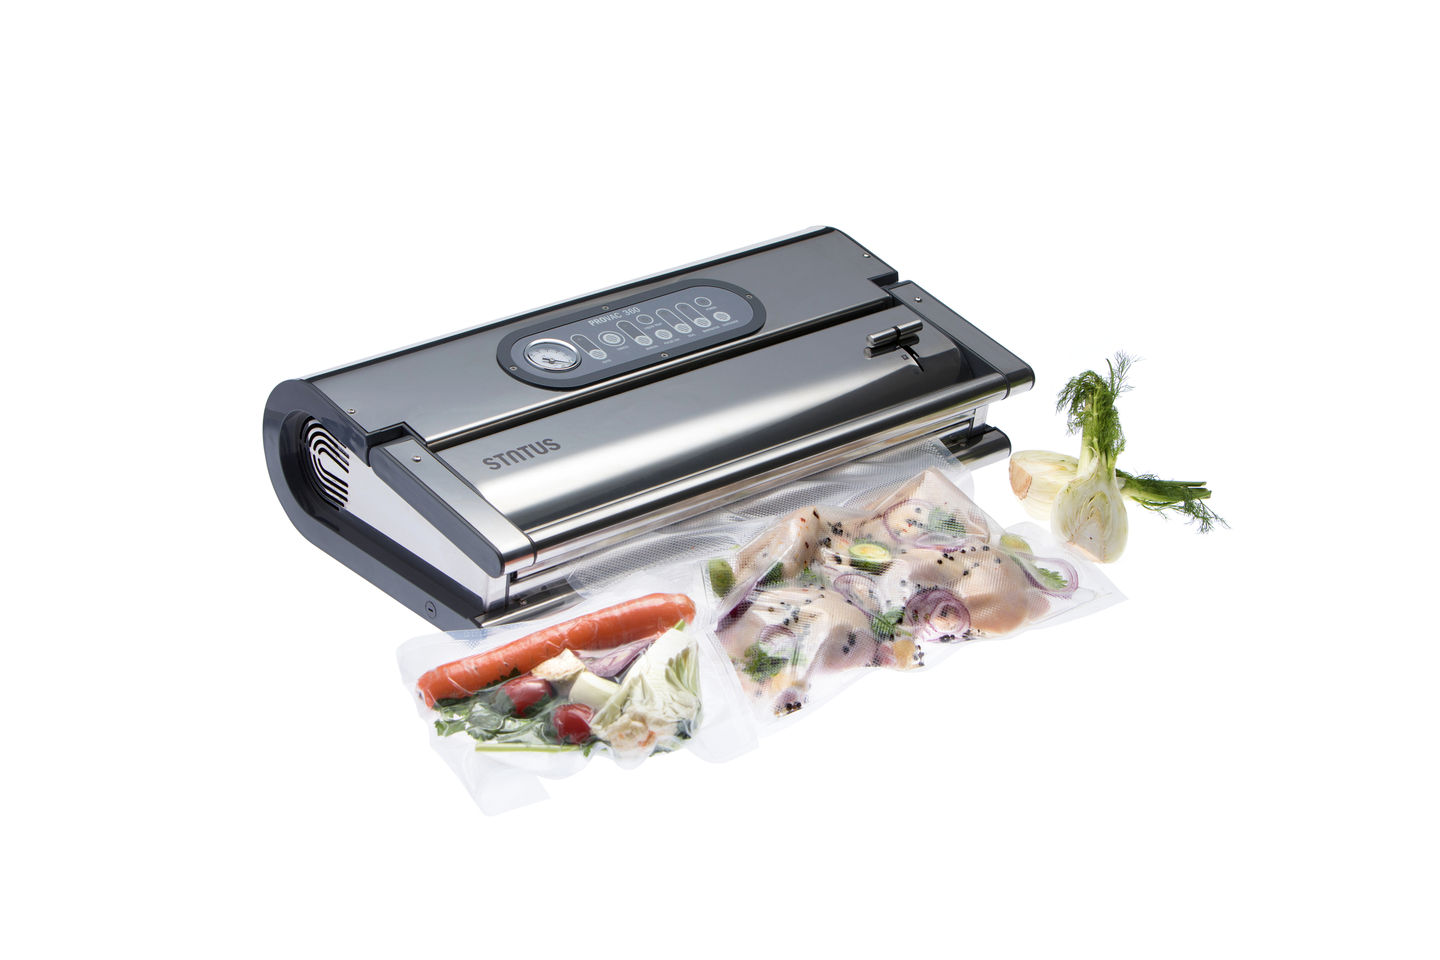 provac machine sous vide